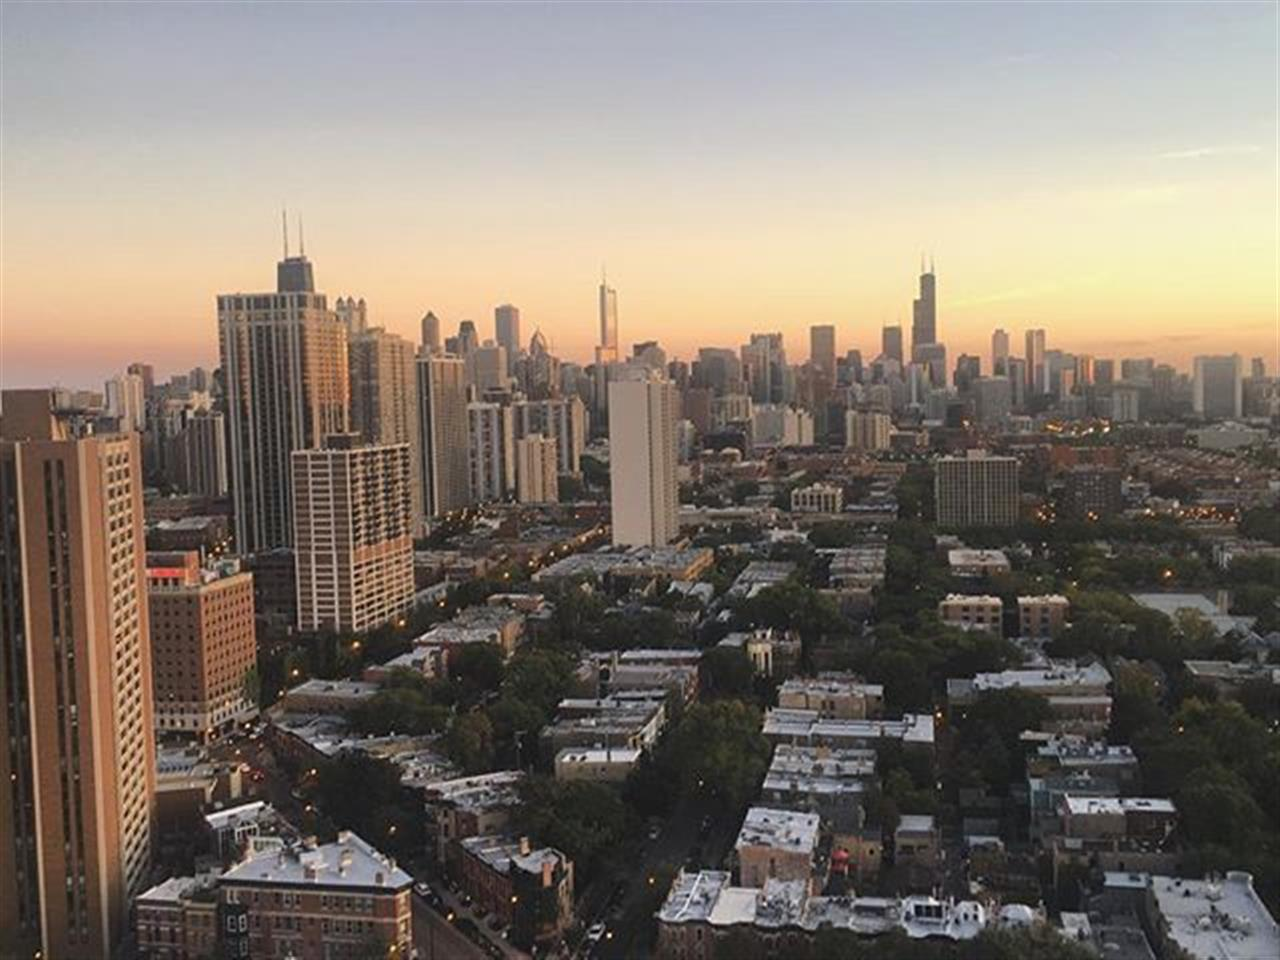 Capturing a great weekend and looking forward to an amazing week, Chicago! #sunset #chicago #twilight #lincolnpark #skyline #leadingrelocal #bairdwarner